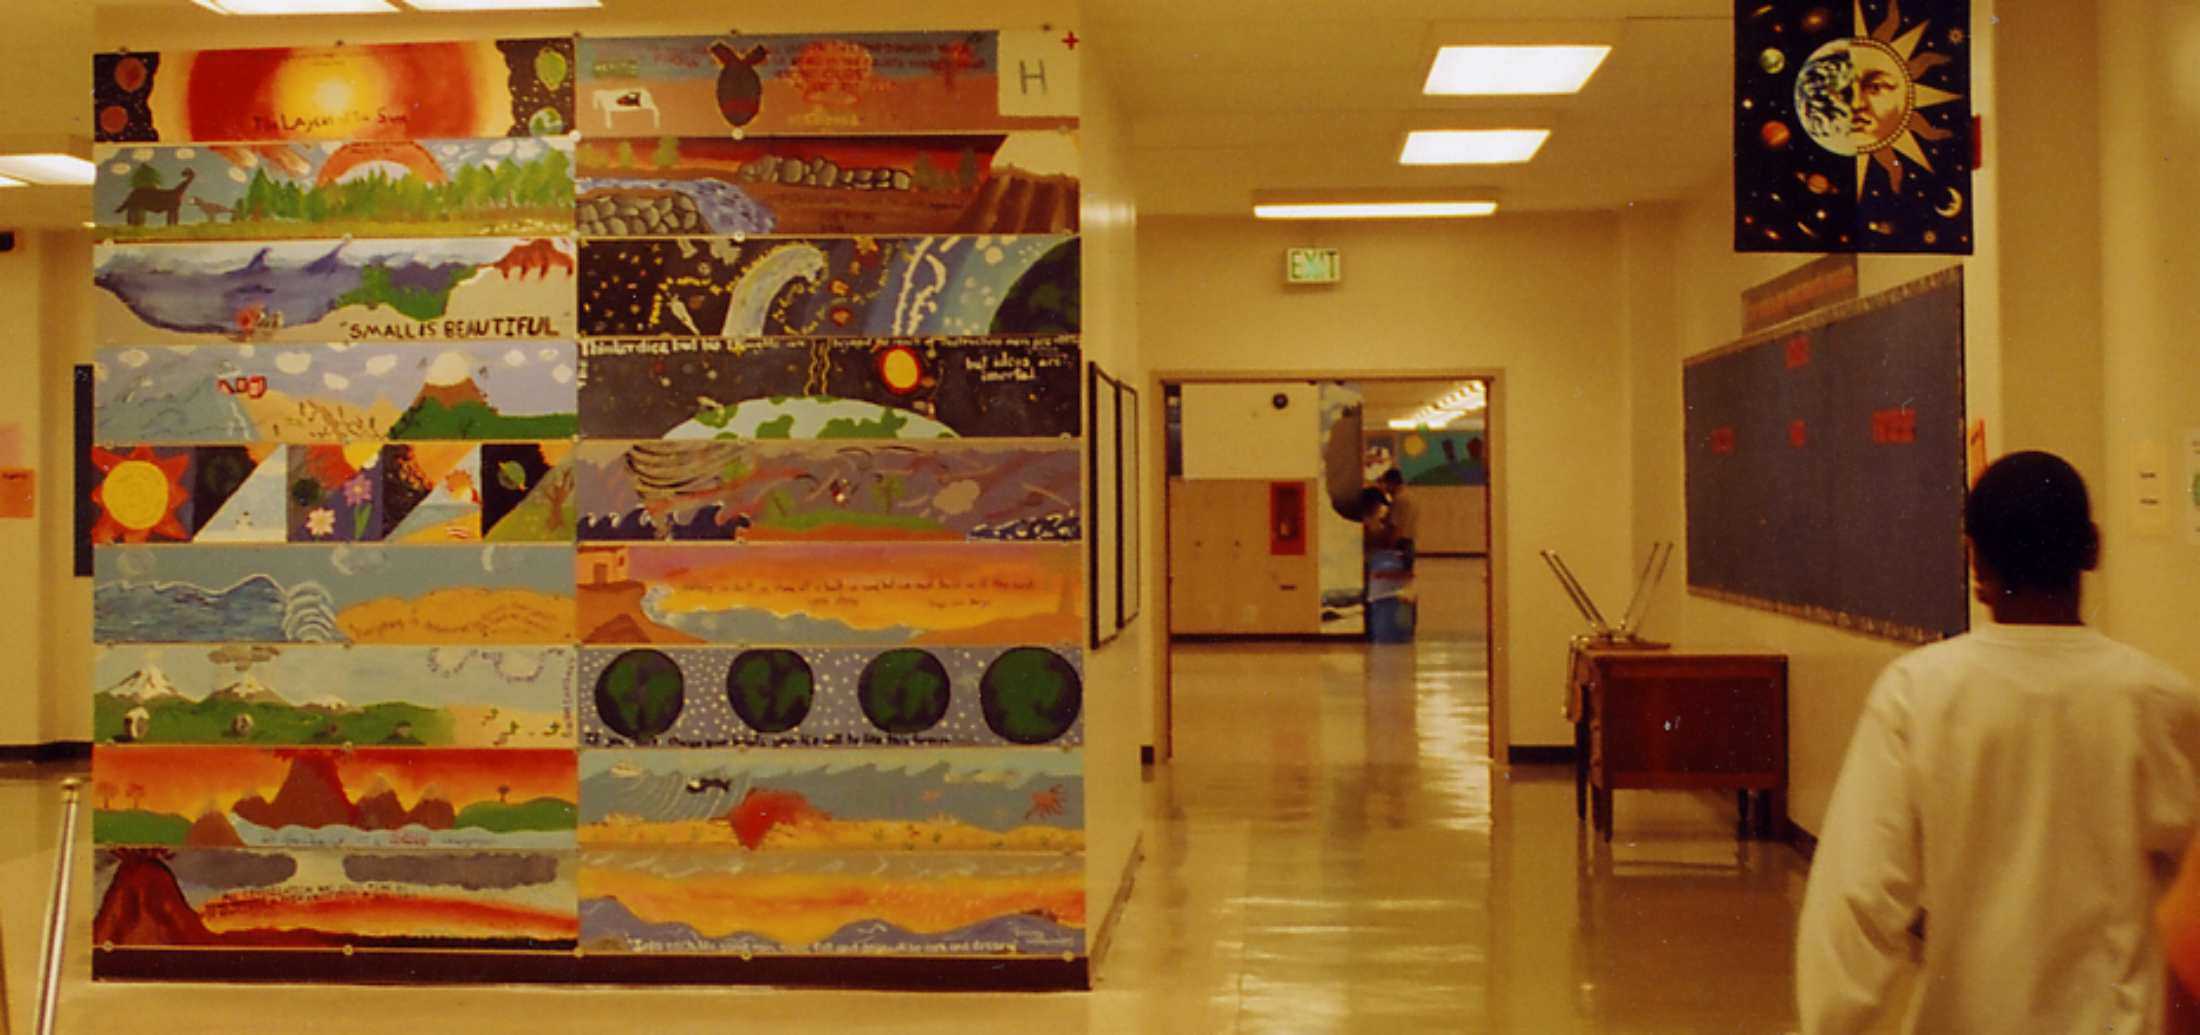 Jackson Middle School mural image